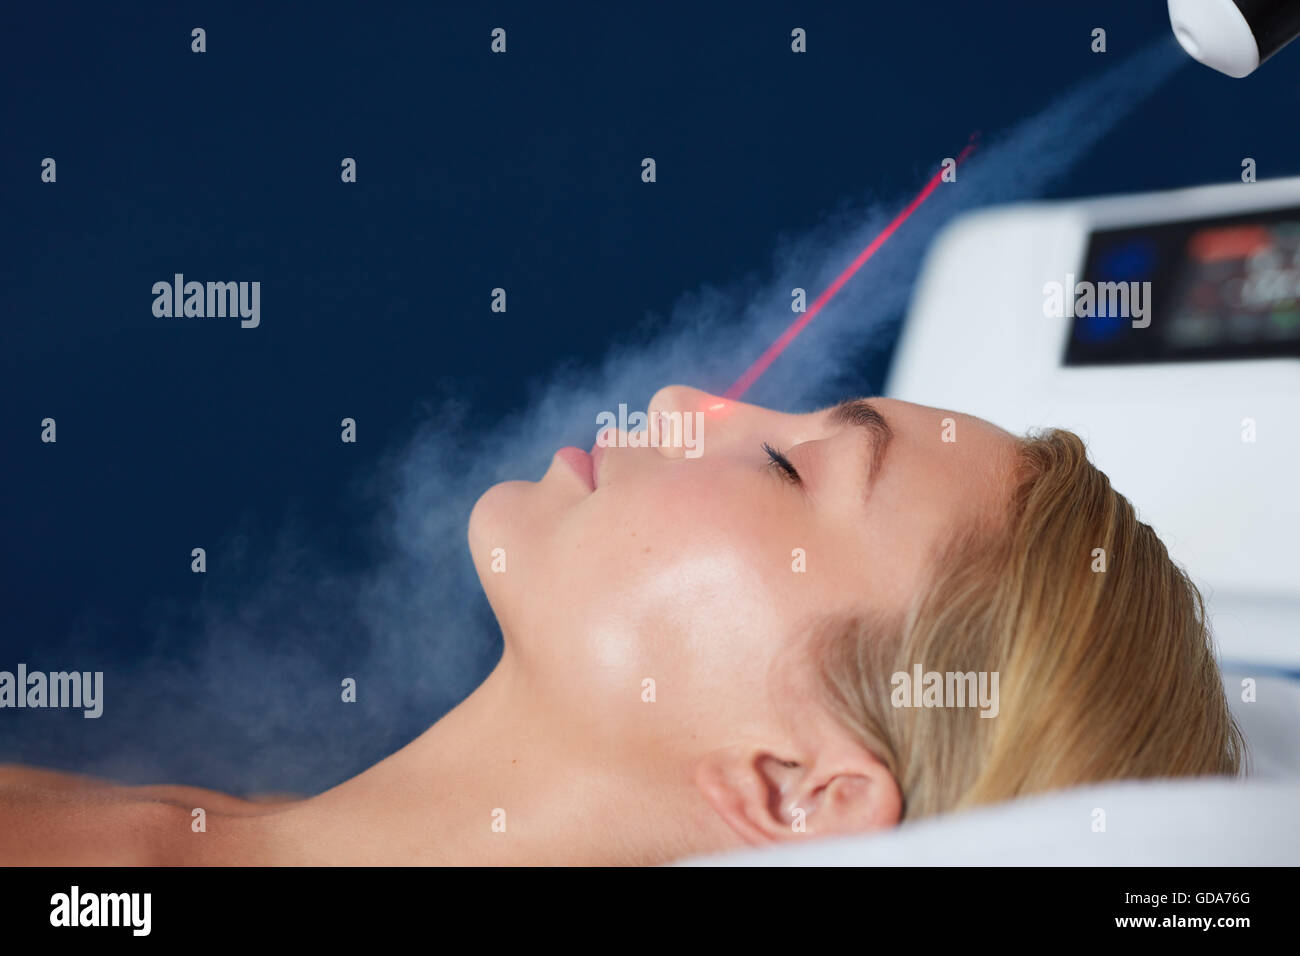 Localized cryotherapy session on the face of young woman. Treatment uses vaporized nitrogen to lower the skin temperature. - Stock Image